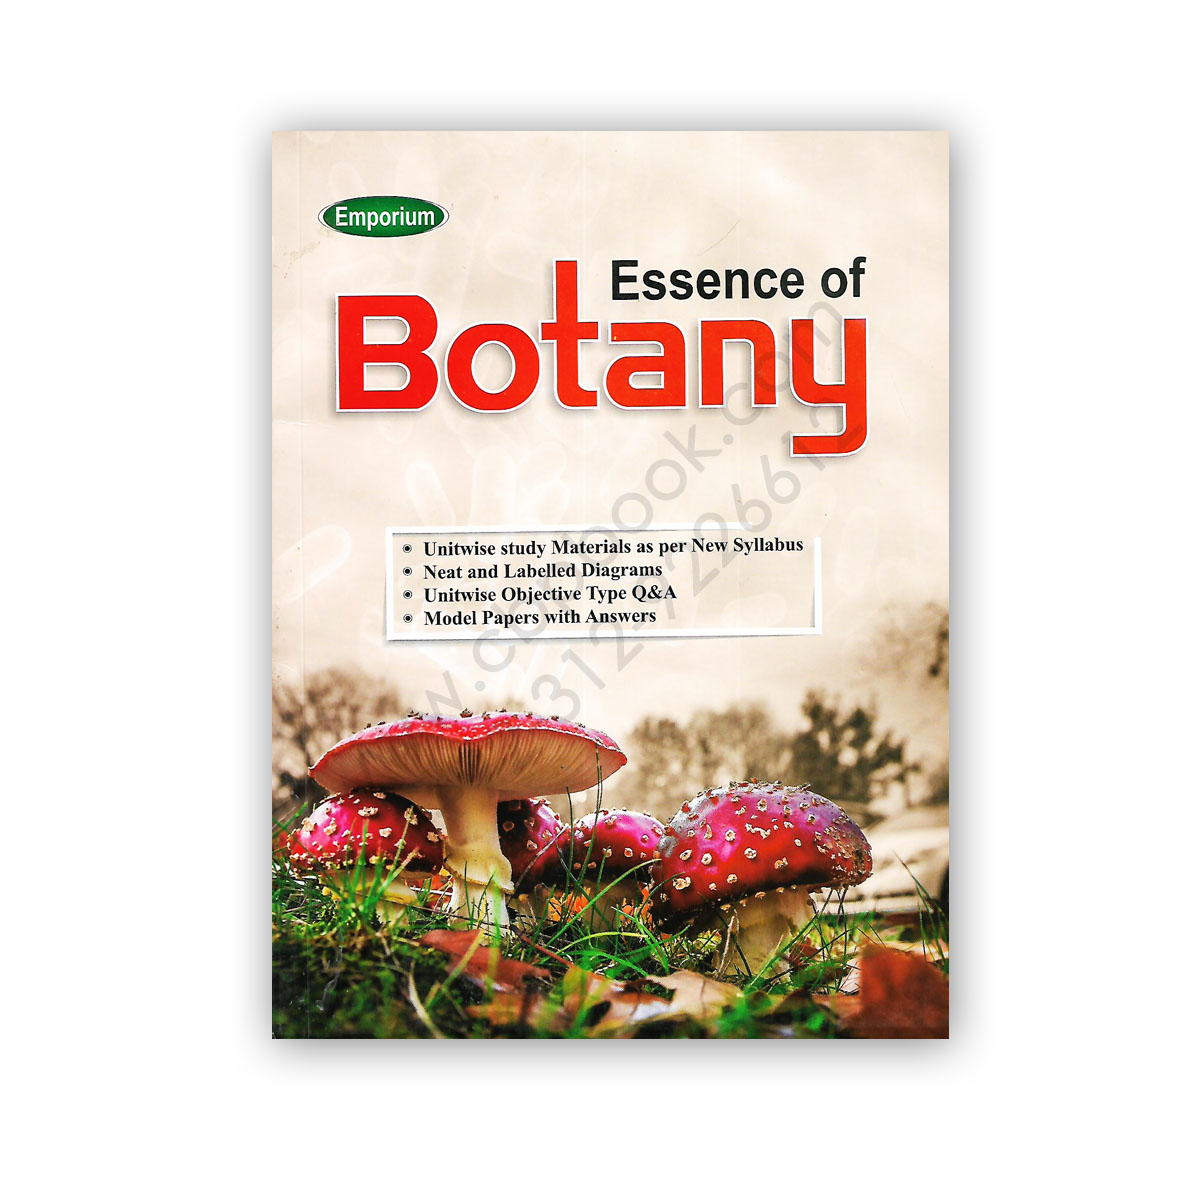 essence of botany by expert panel of emporium publications